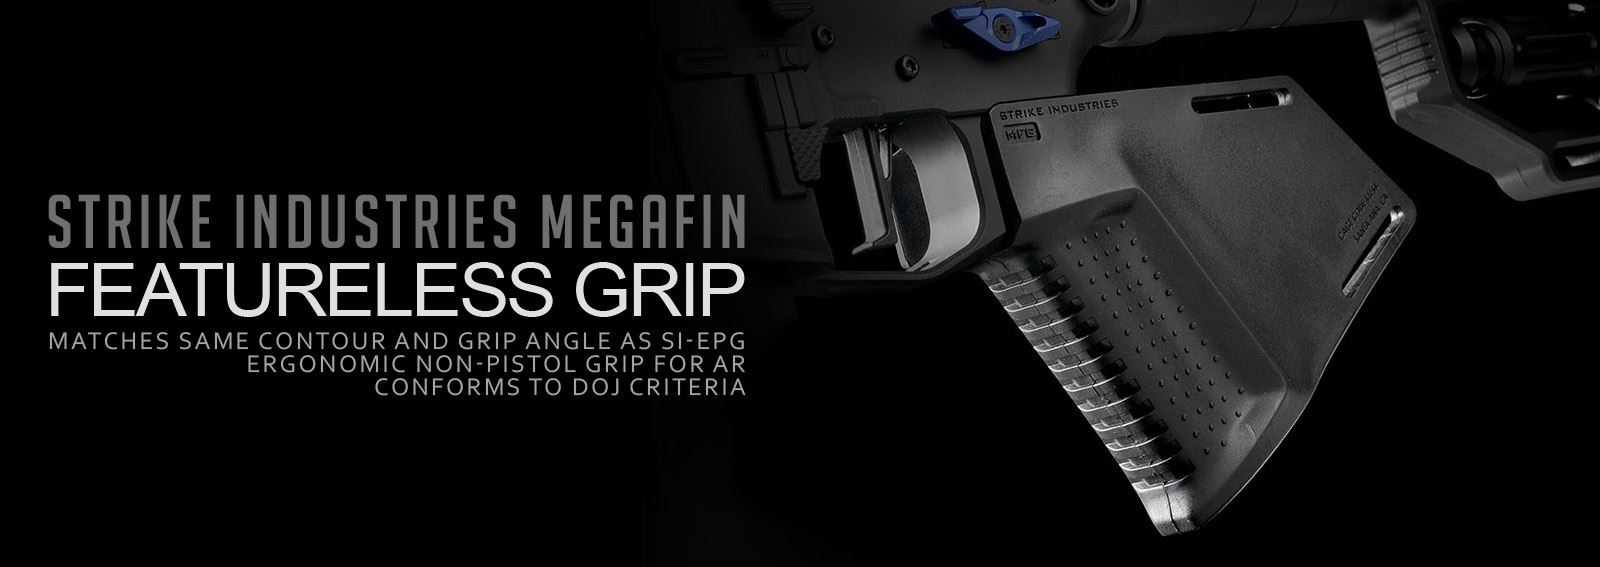 strike-industries-megafin-featureless-grip.jpg